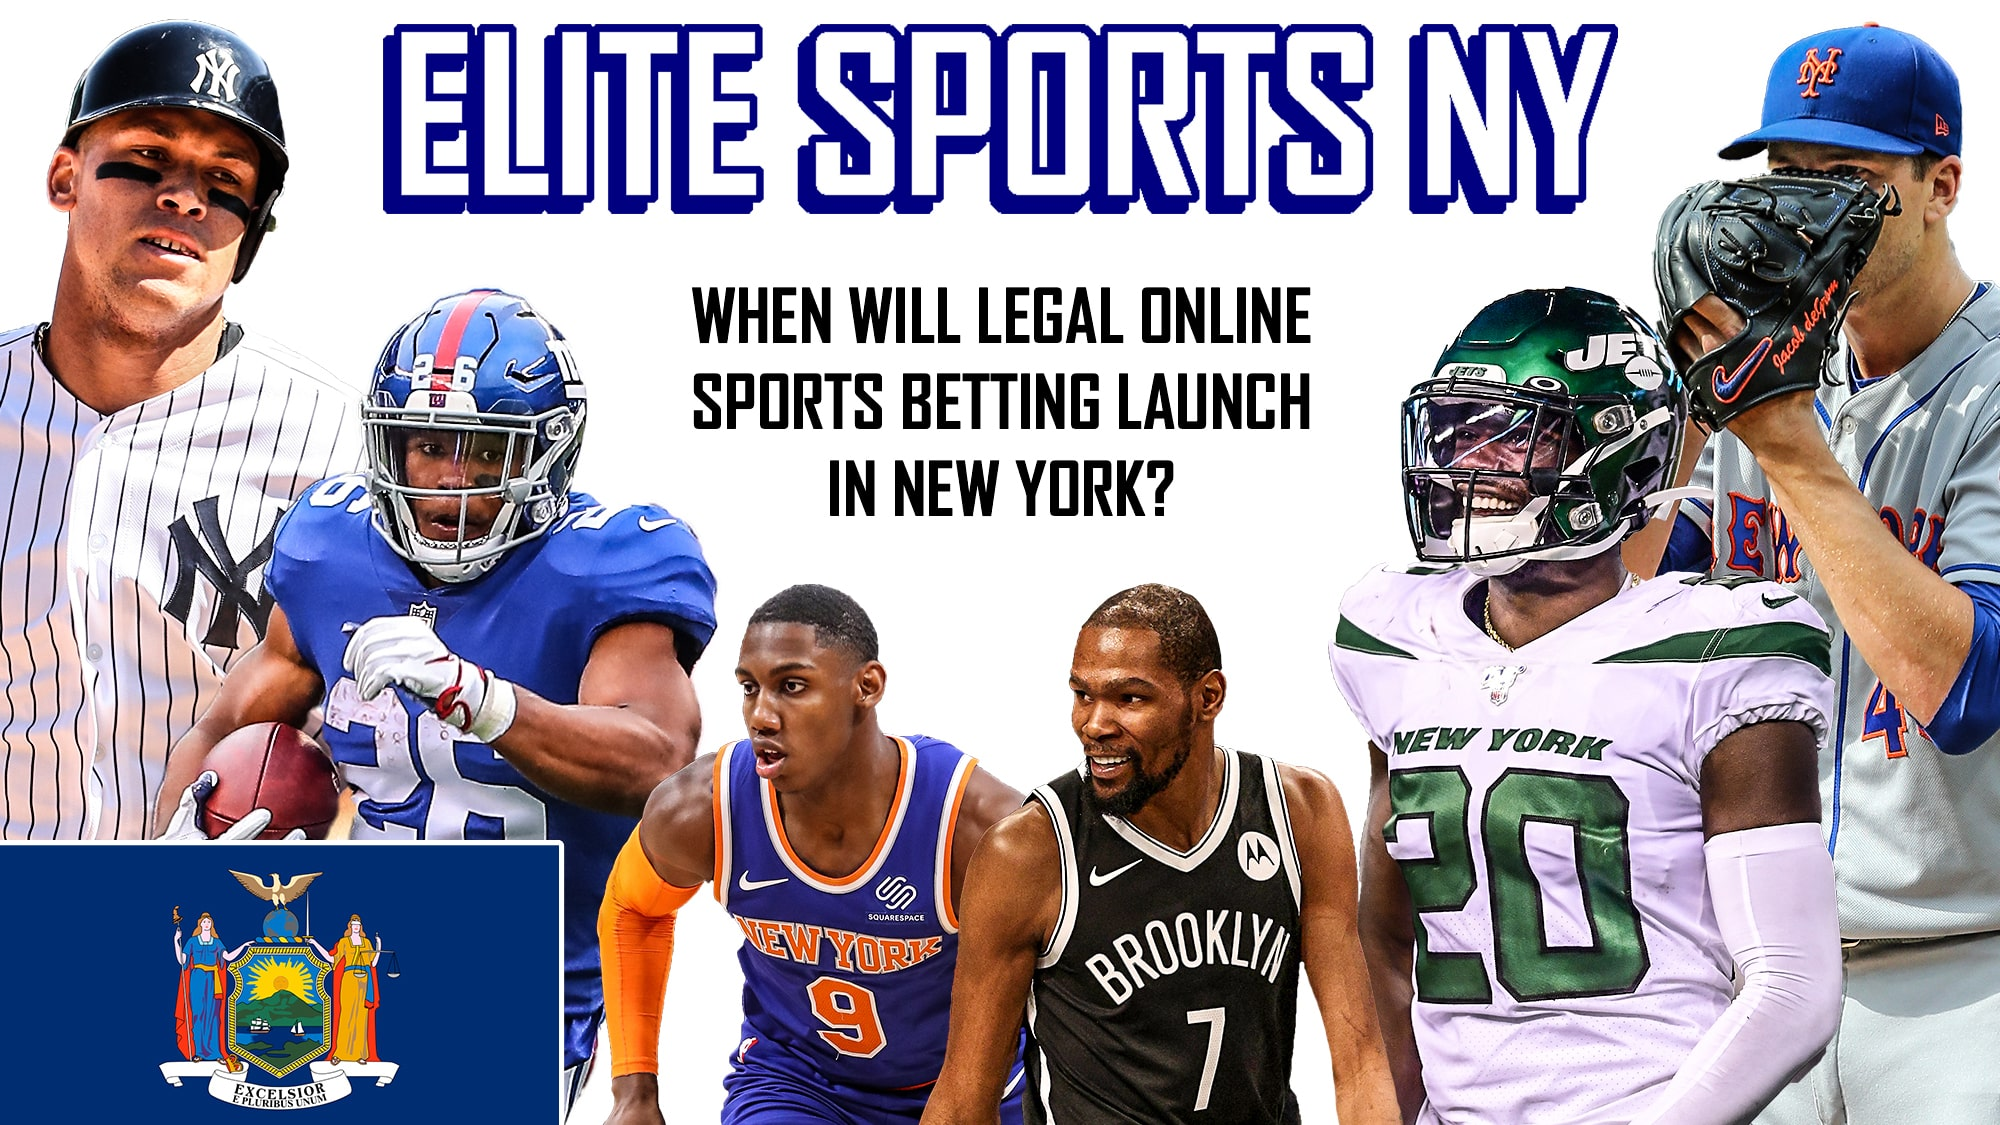 When will legal online sports betting launch in New York?